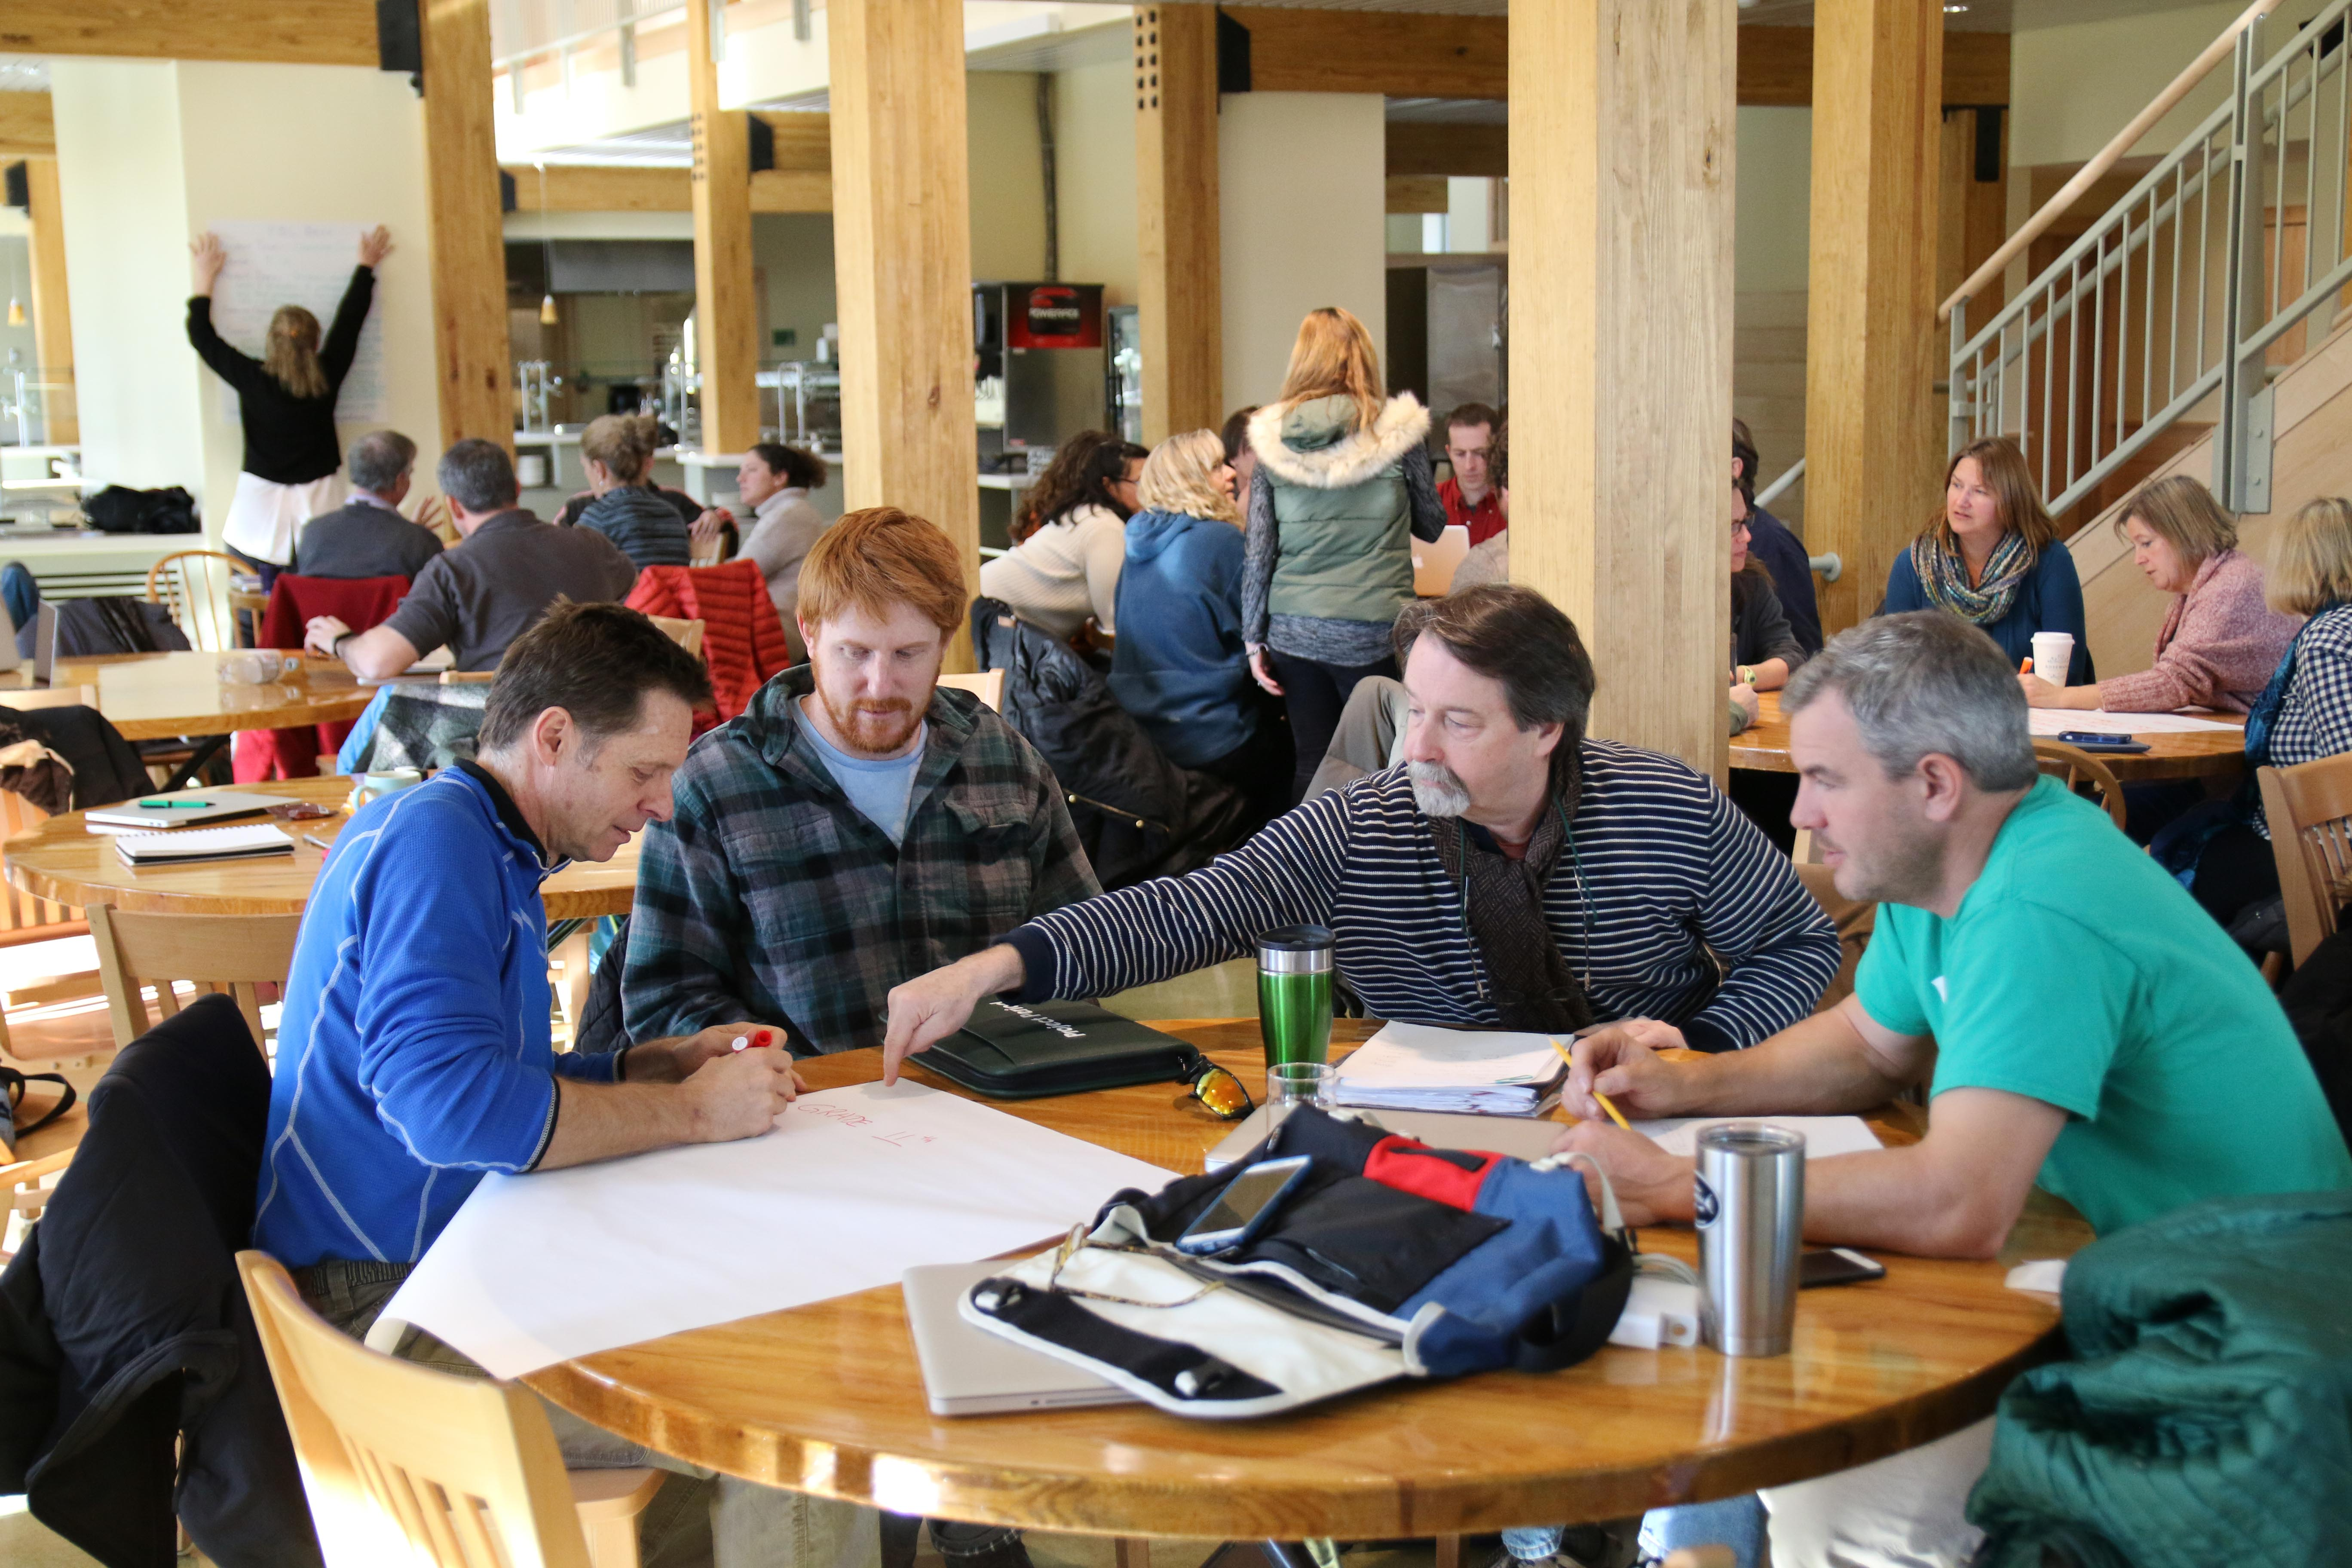 Proctor Academy Boarding School Academics Experiential Learning